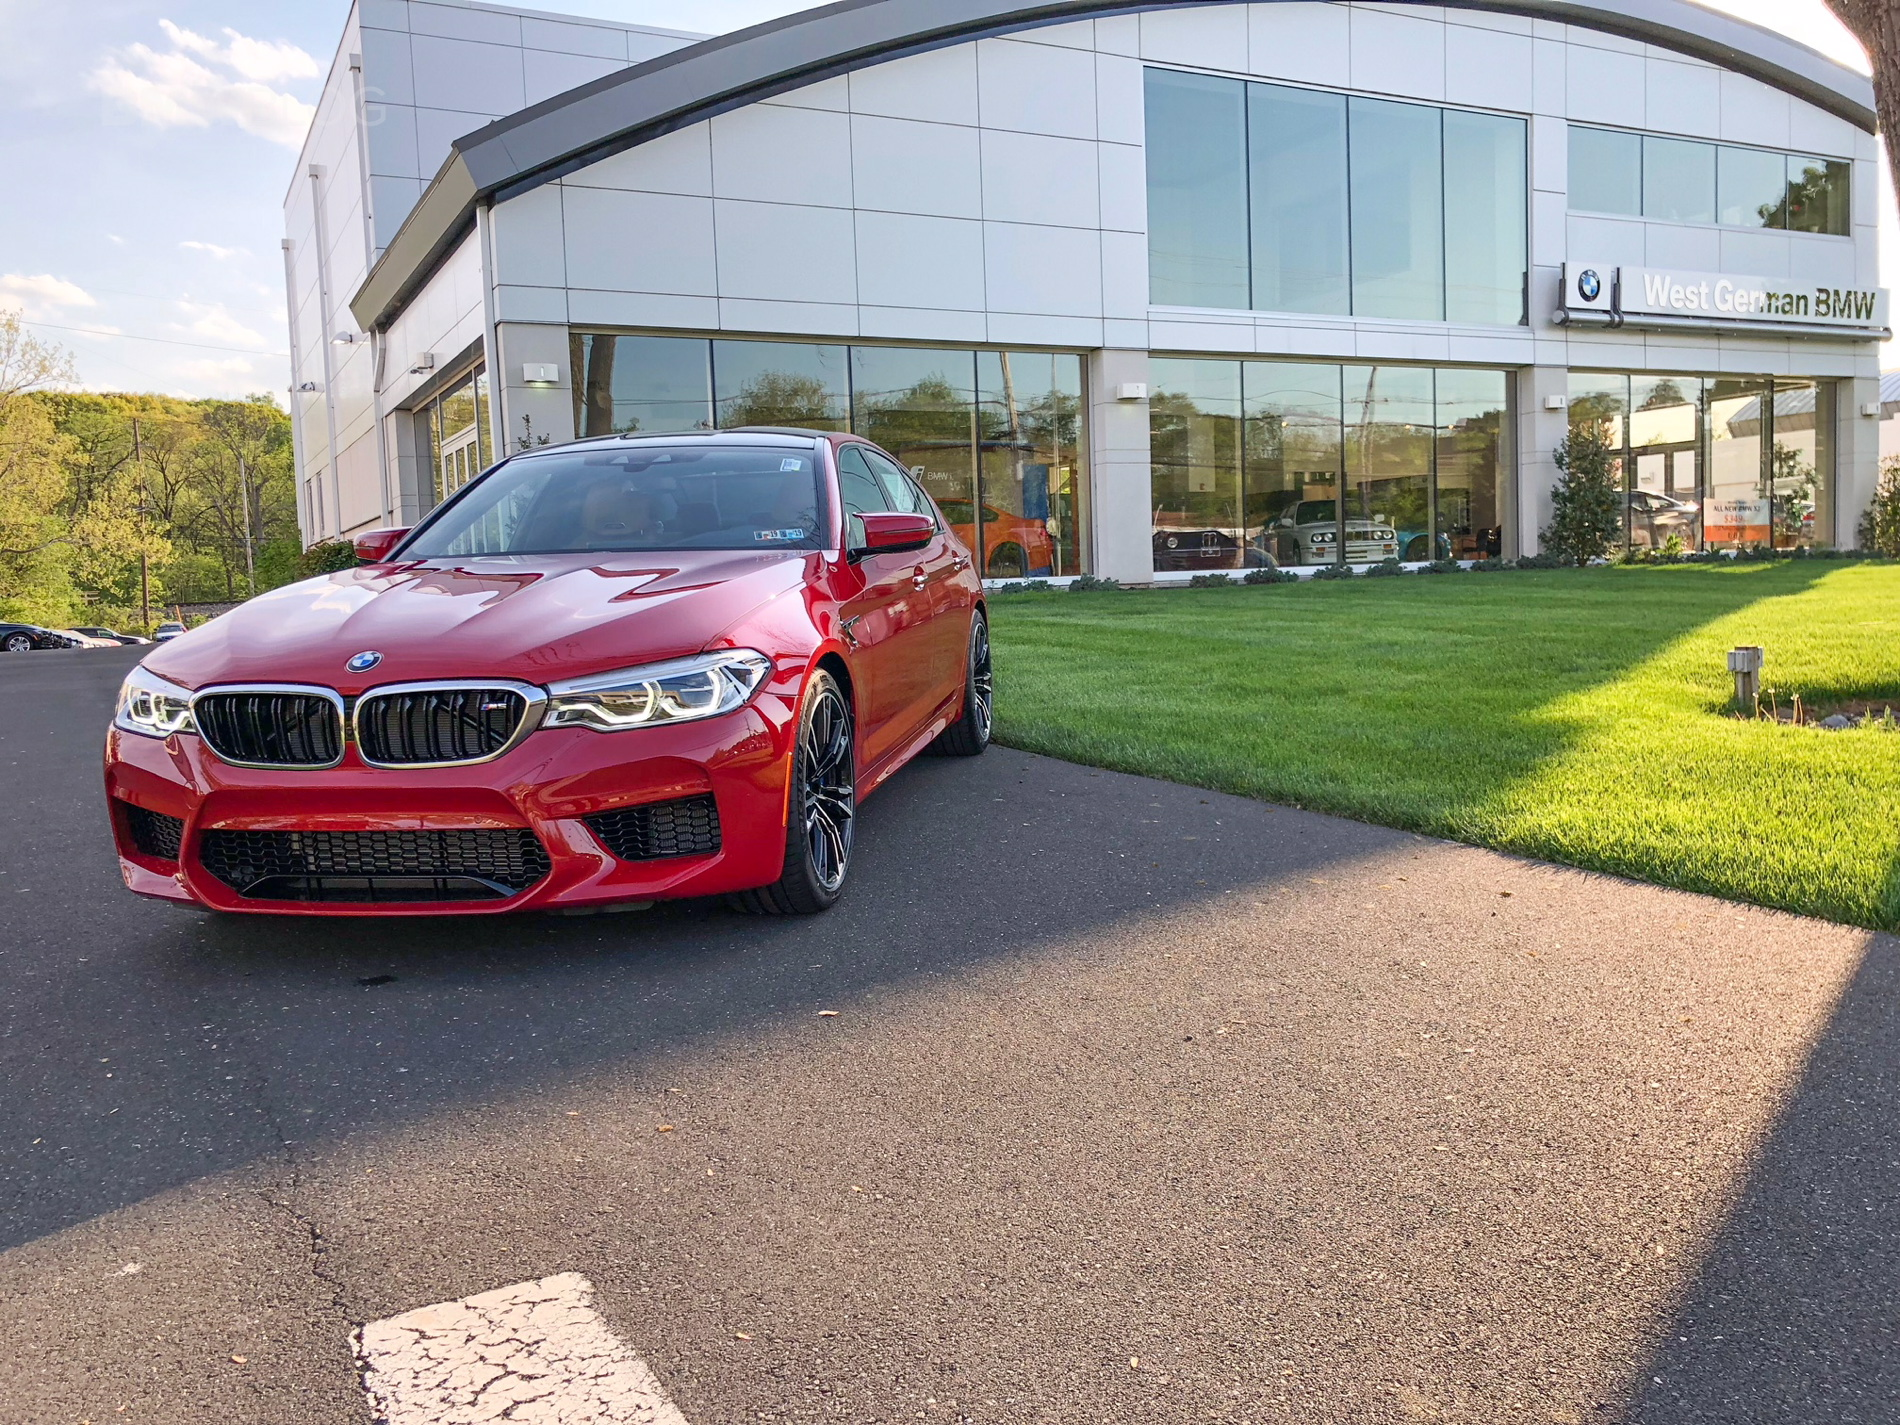 BMW F90 M5 Imola Red 03